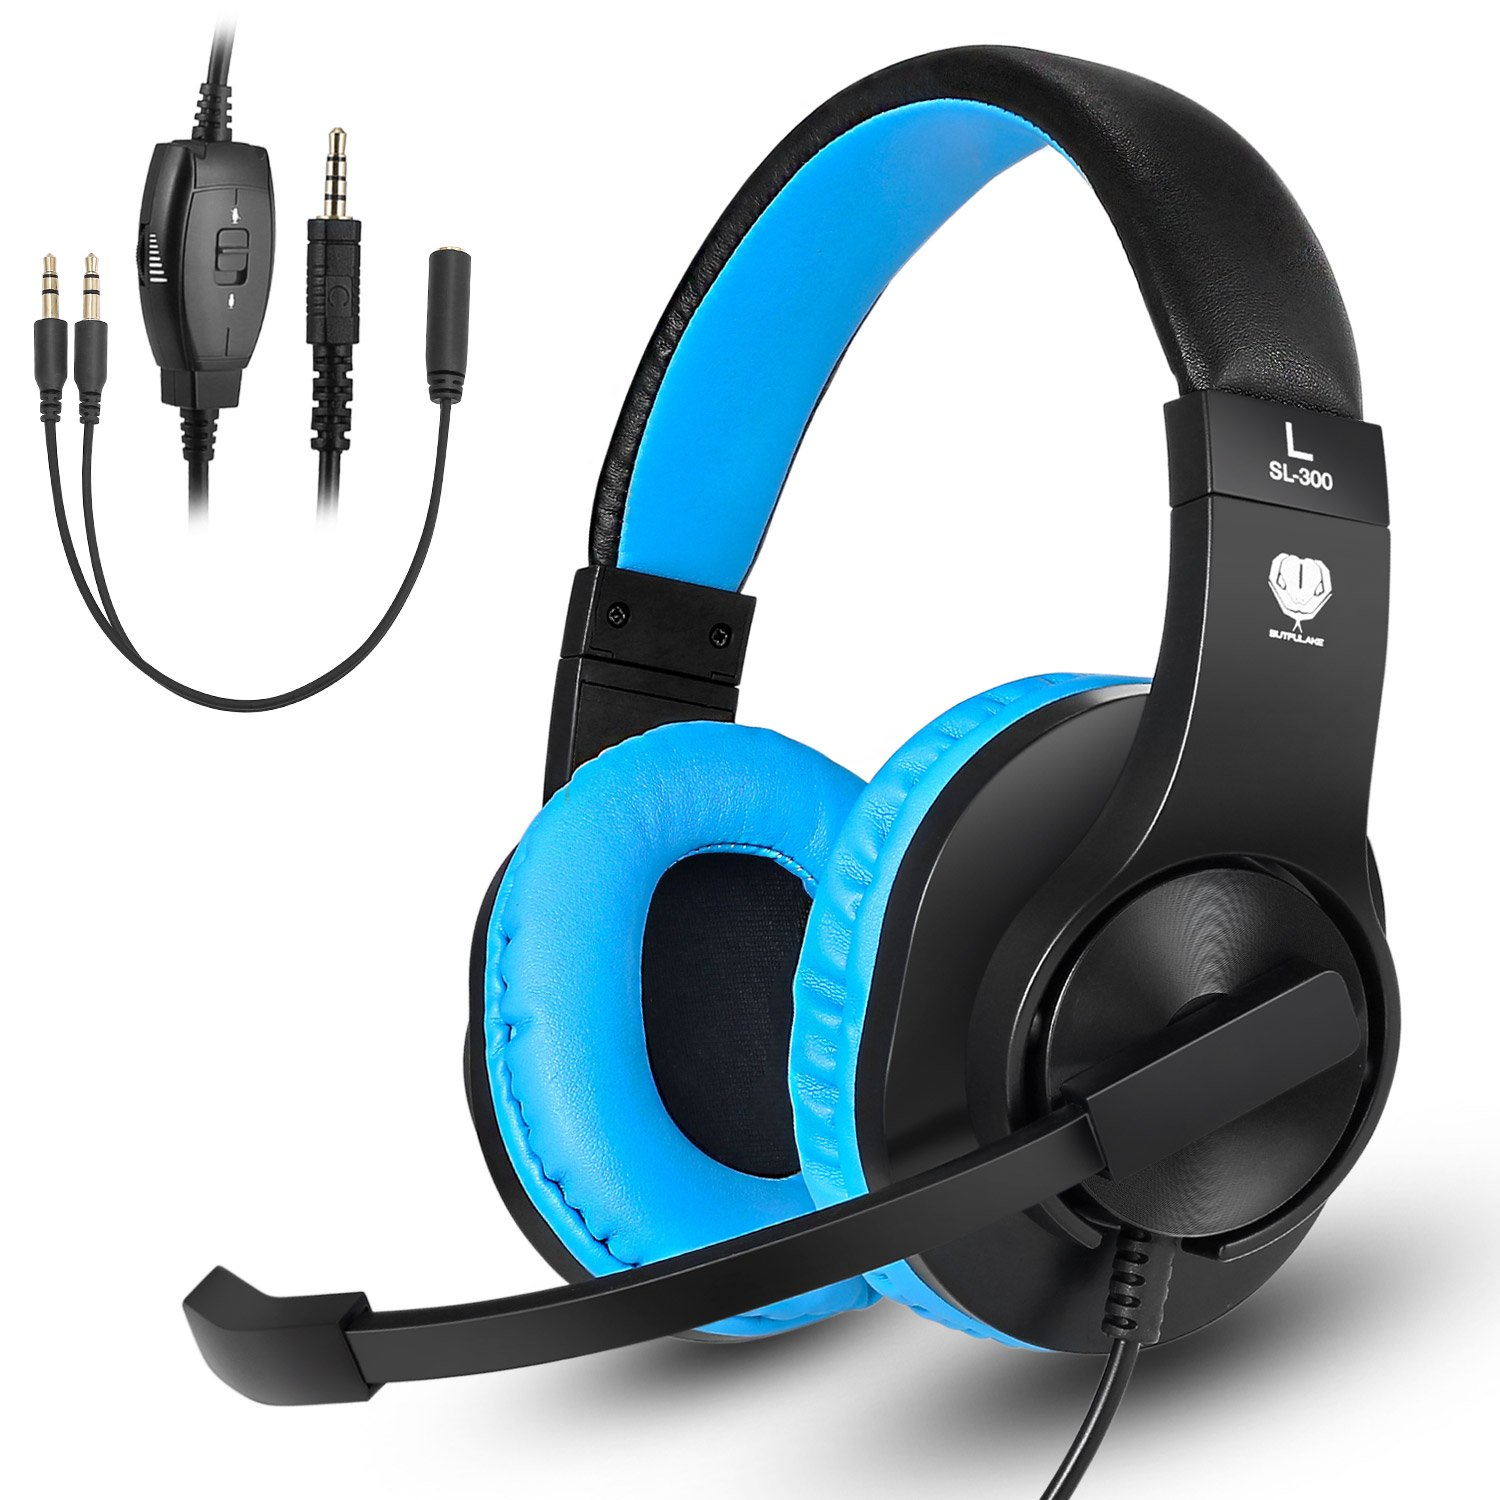 Gaming Headset with mic for PS4, Xbox one, PC, Computer, Kearui 3.5mm Wired Stereo Sound Over Ear [ One Key Mute ] Headphones with Noise Isolation for Fortnite/PUBG/God of War (Black & Blue)